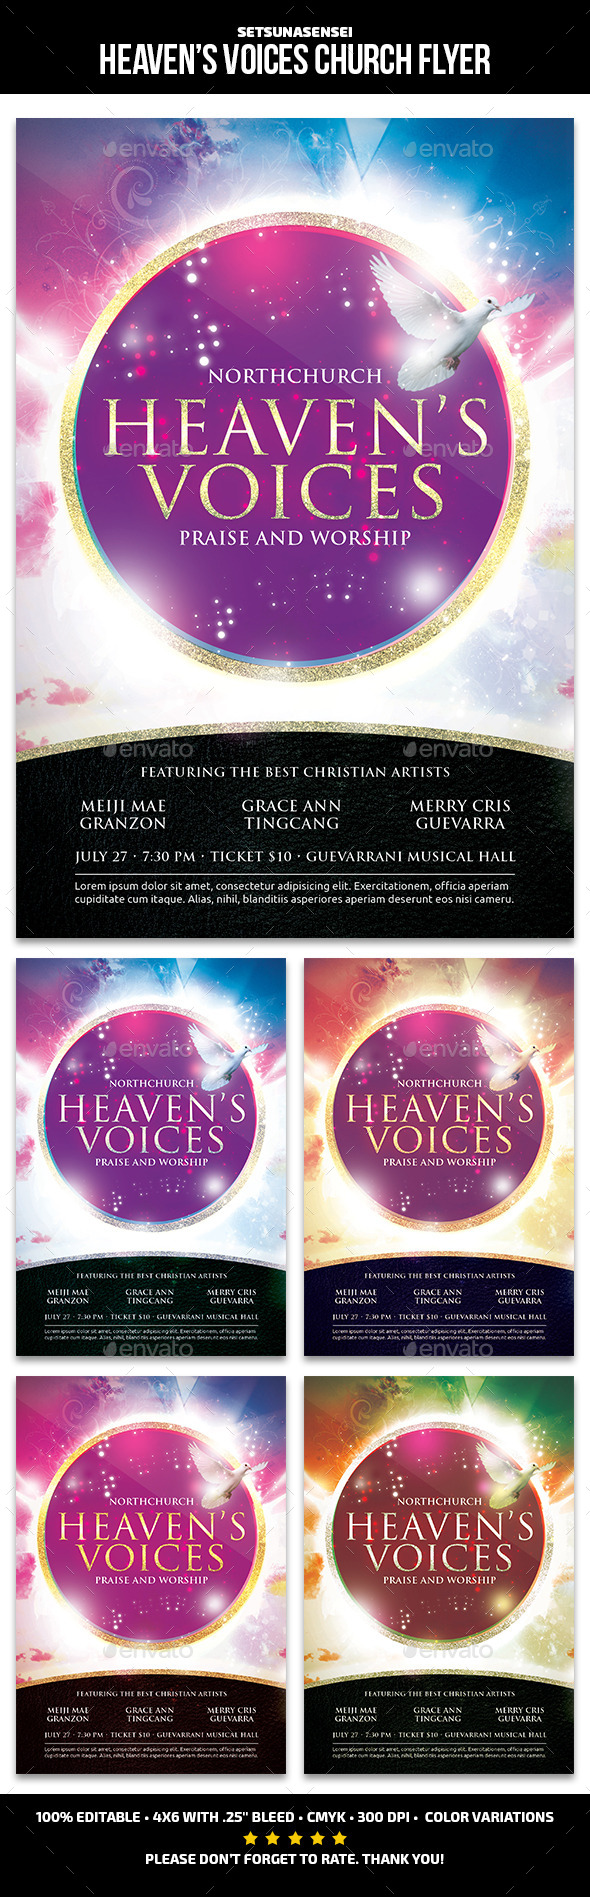 Heaven Voices Church Flyer - Church Flyers